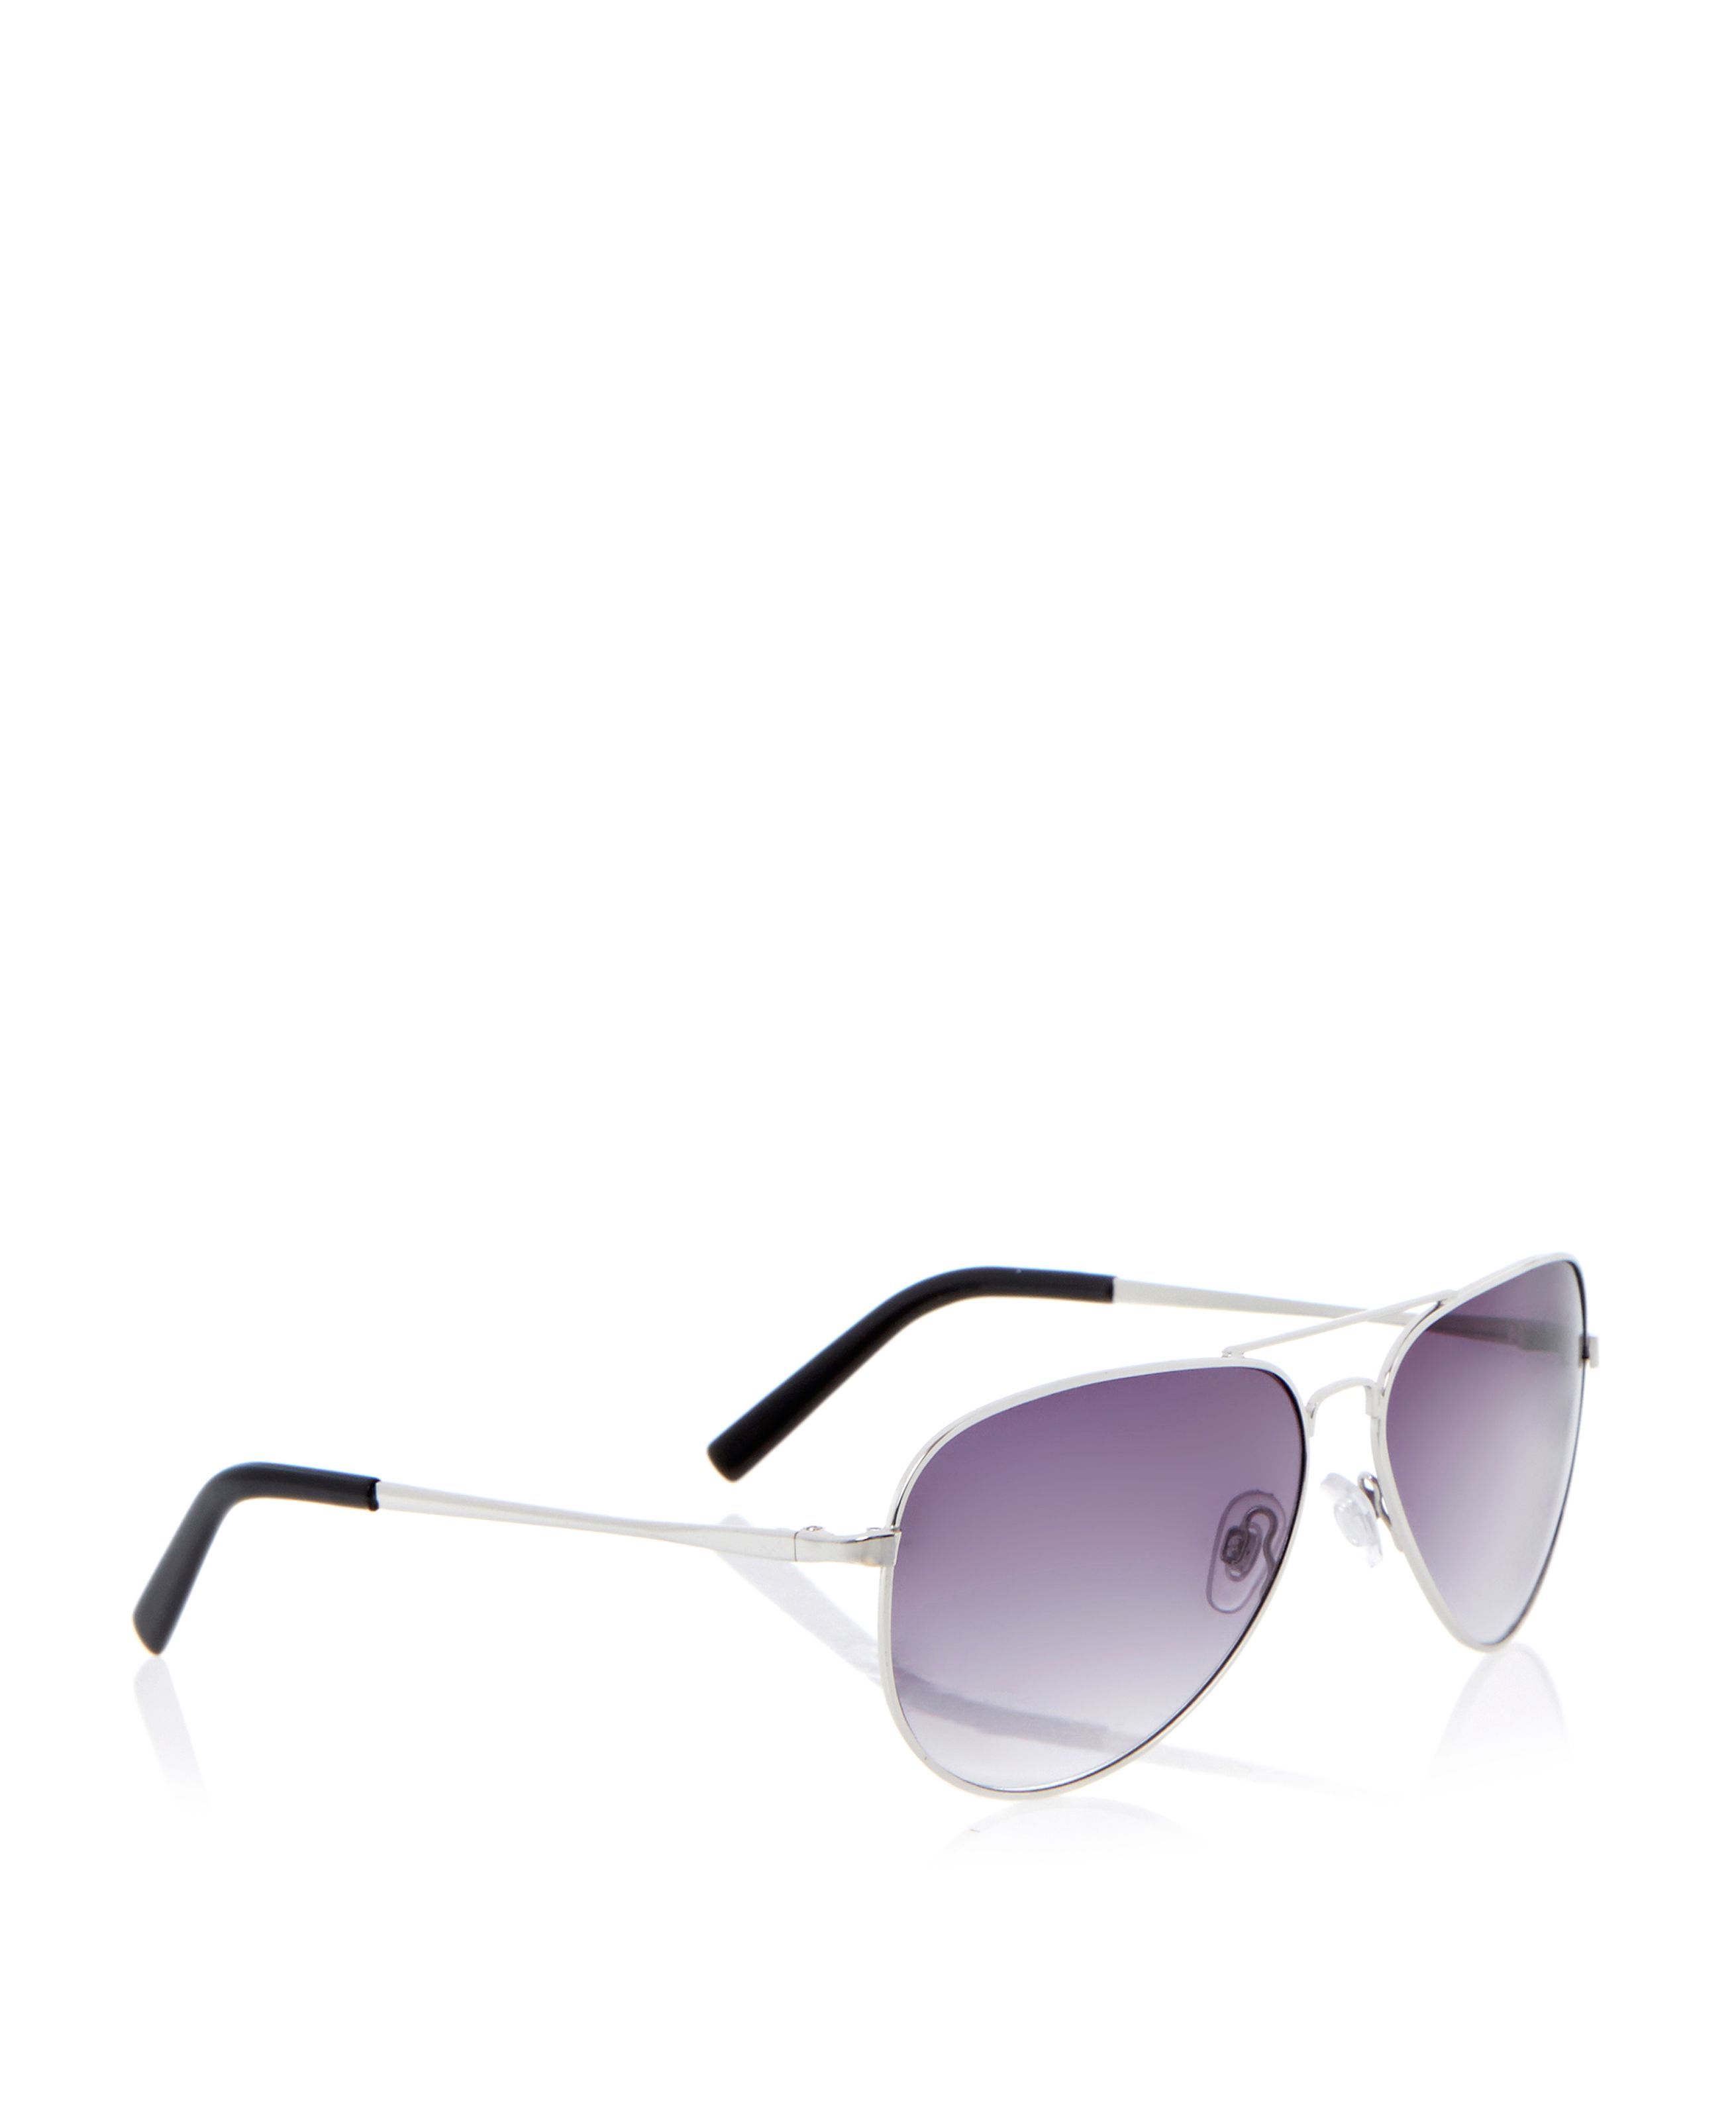 Philly mens silver aviators